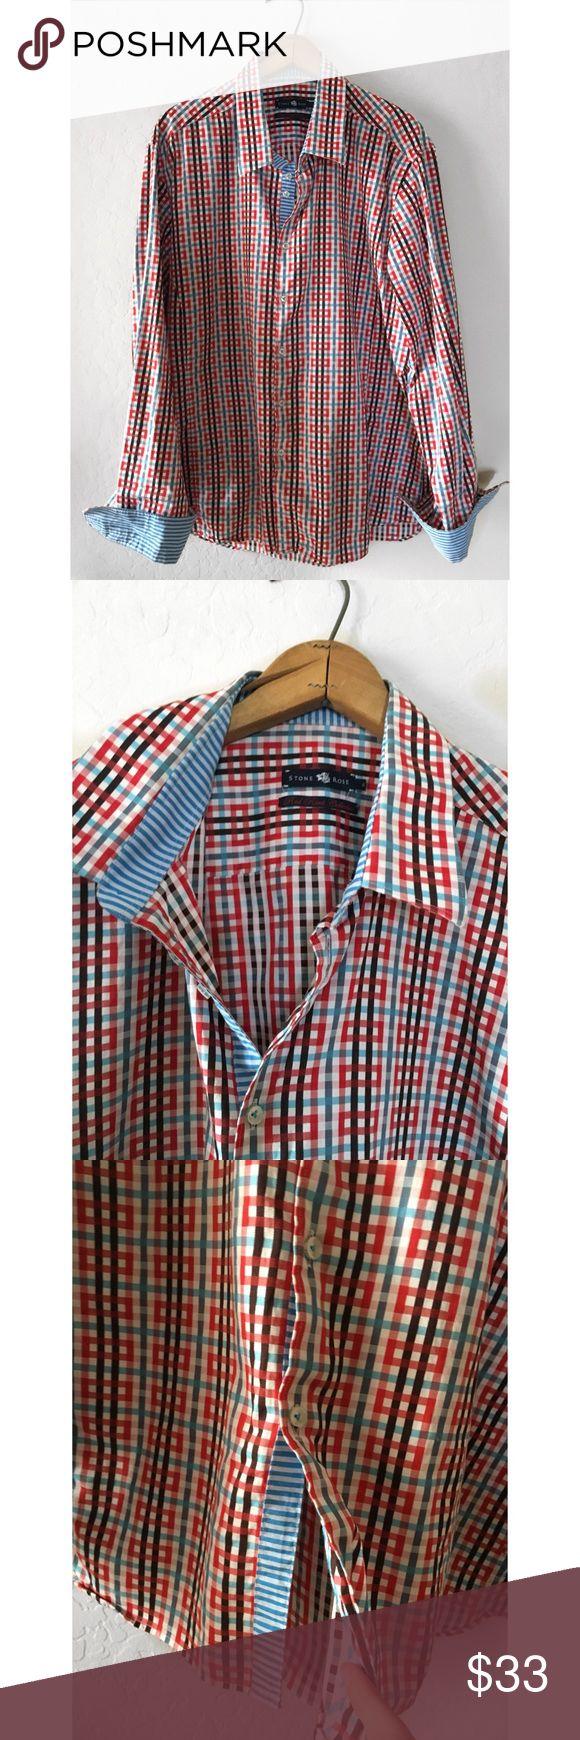 """DESIGNER STONE ROSE RED RIVET COLLECTION SHIRT XXL STONE ROSE RED RIVET COLLECTION PLAID SHIRT SZ XXL - 48-50""""CHEST 19"""" SHOULDER TO SHOULDER 29-30"""" LENGTH - 100% COTTON Stone Rose Shirts Casual Button Down Shirts"""